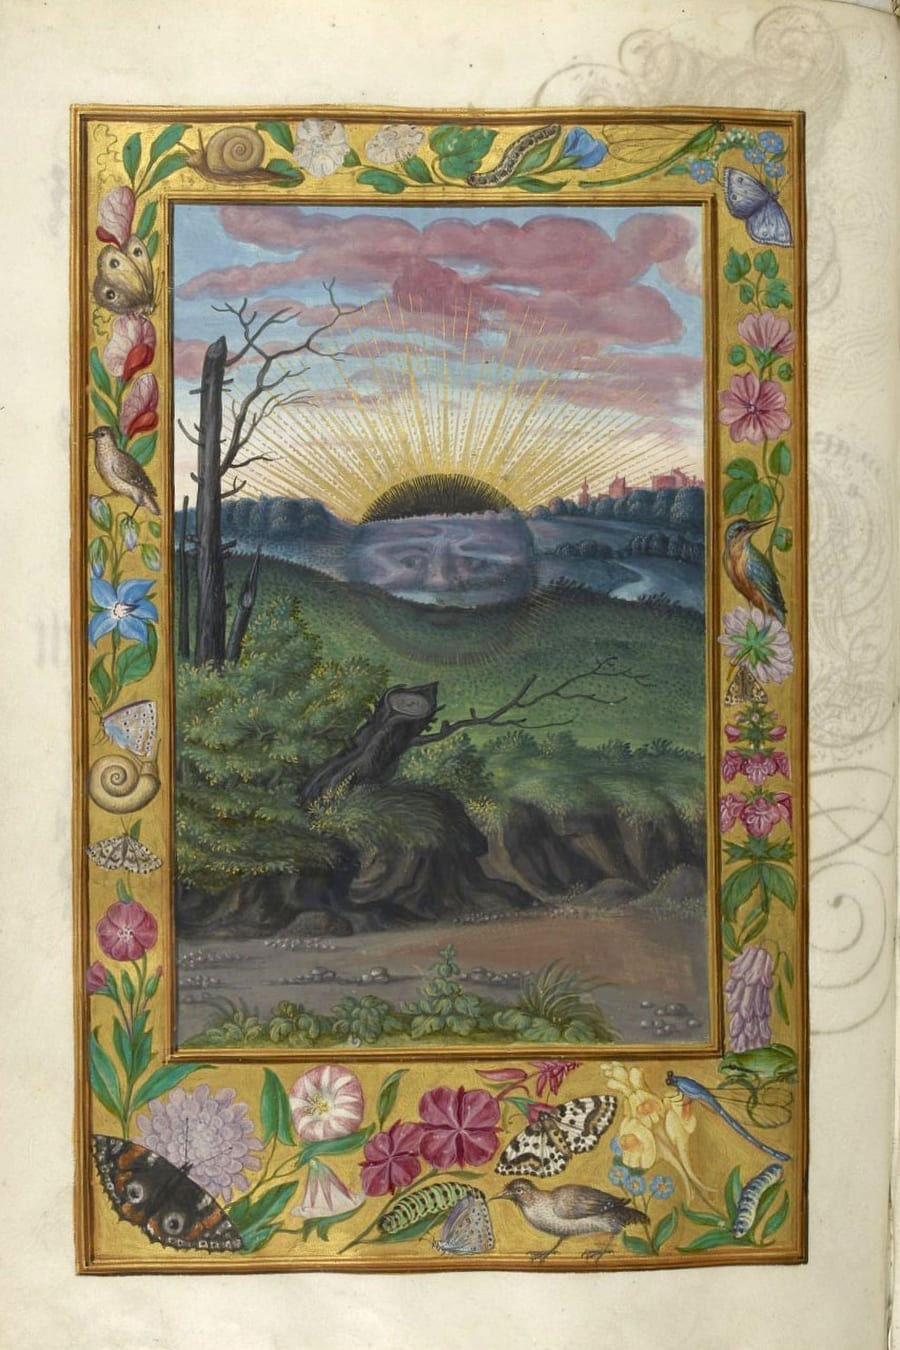 Illustration of a black sun from the Alchemical manuscript Splendor Solis